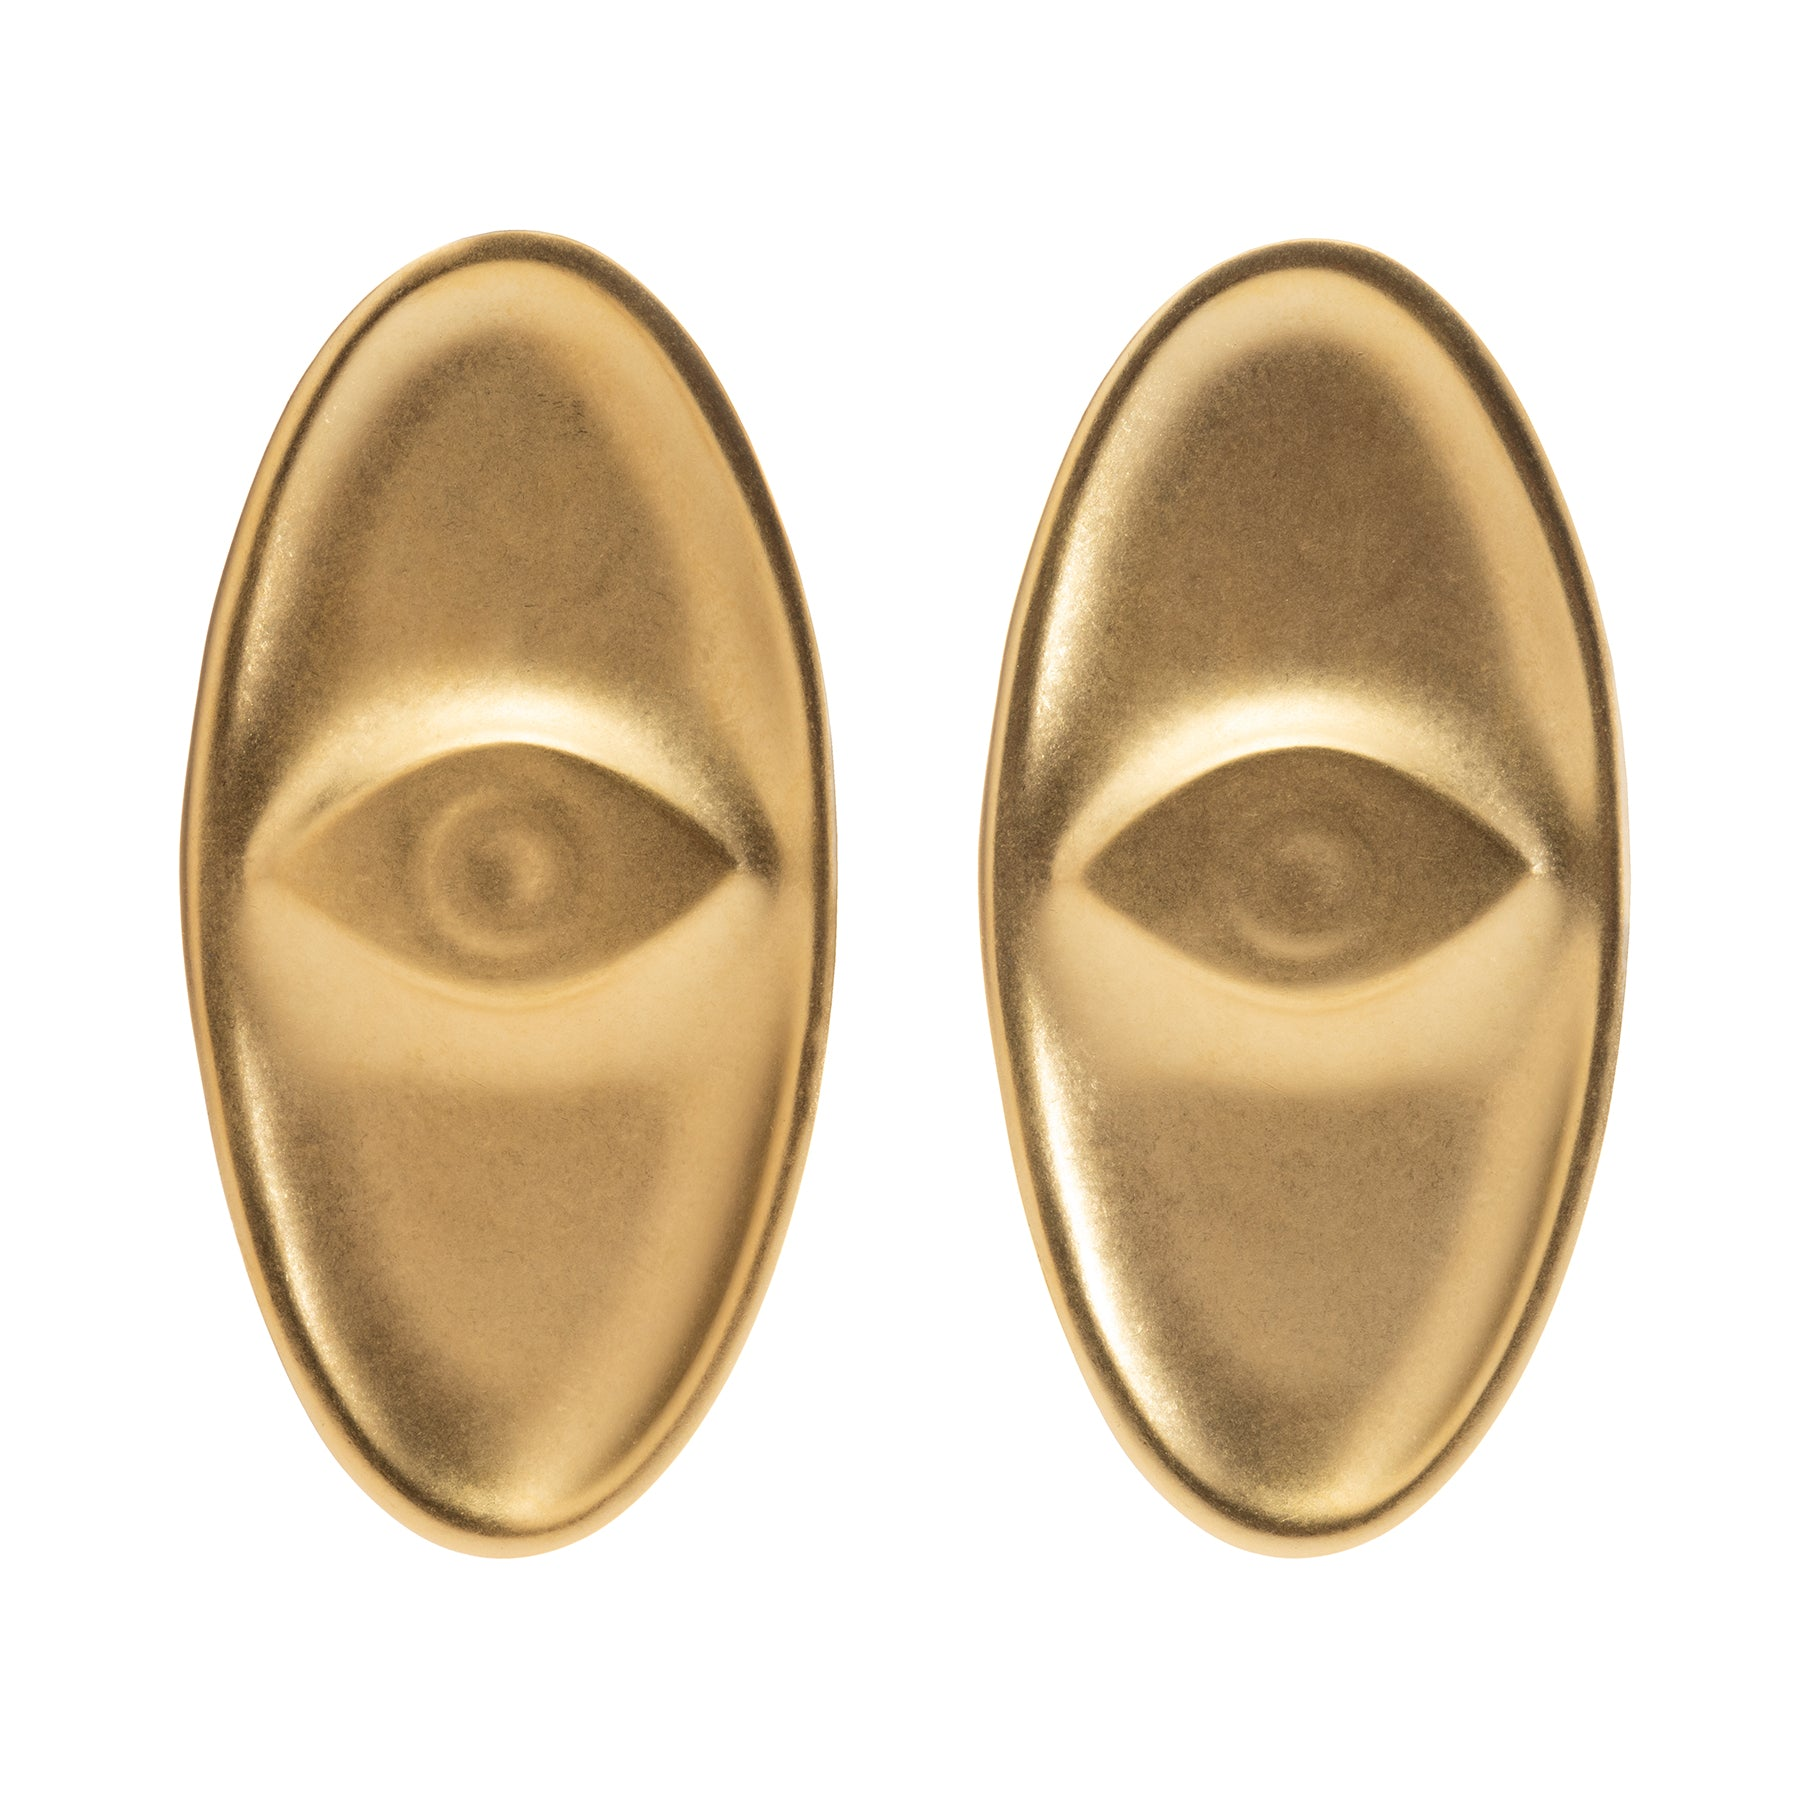 Amulet Earrings,Eye, Gold